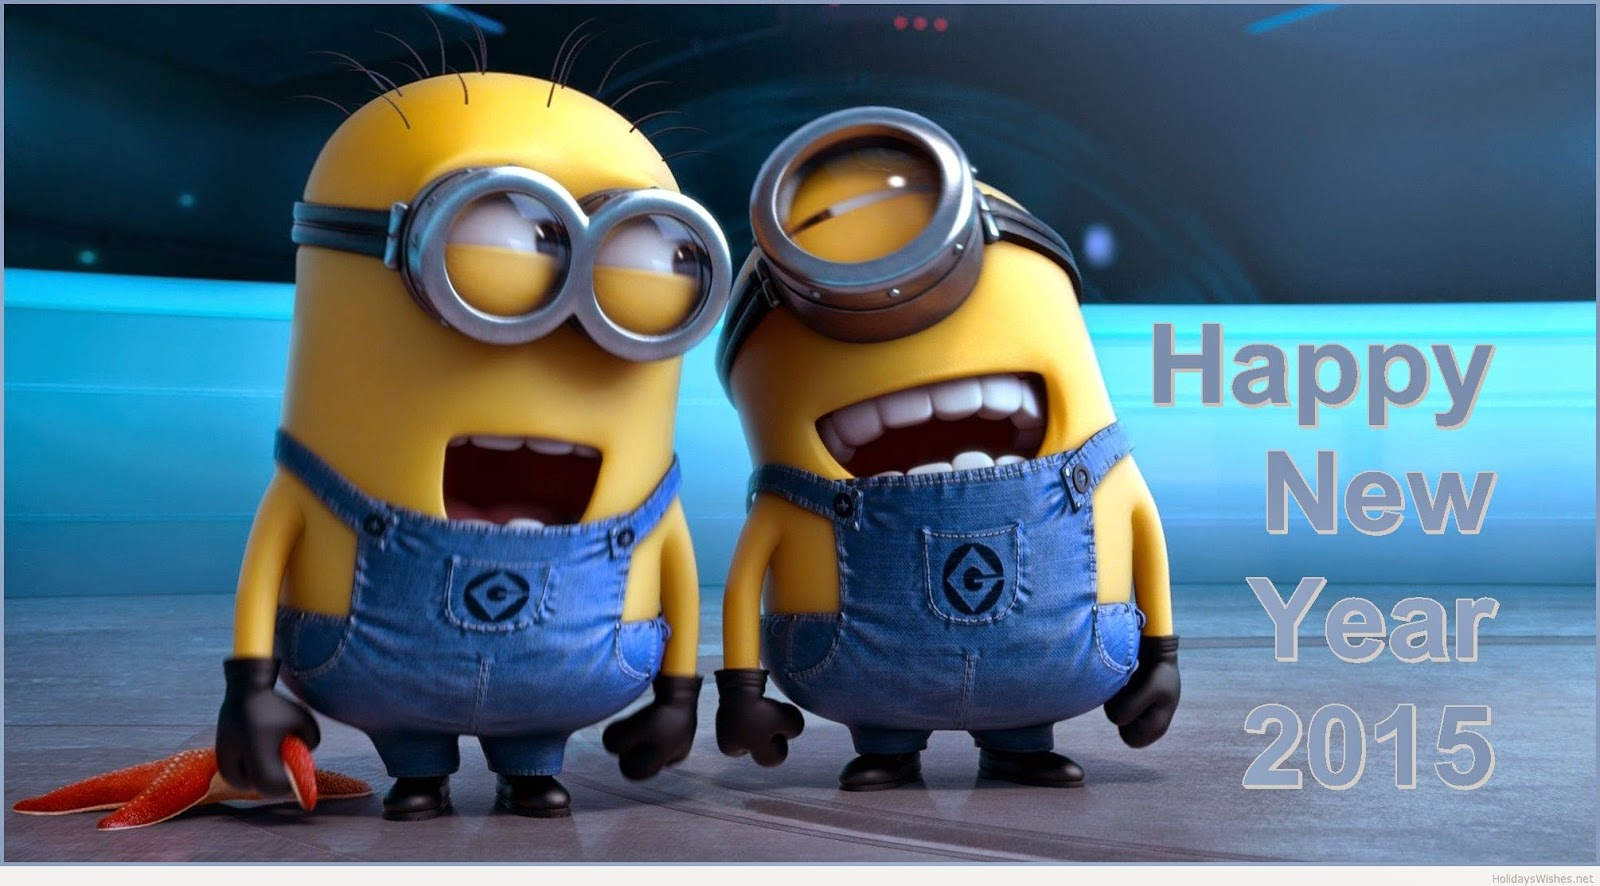 Happy New Year Minion wallpaper for kids